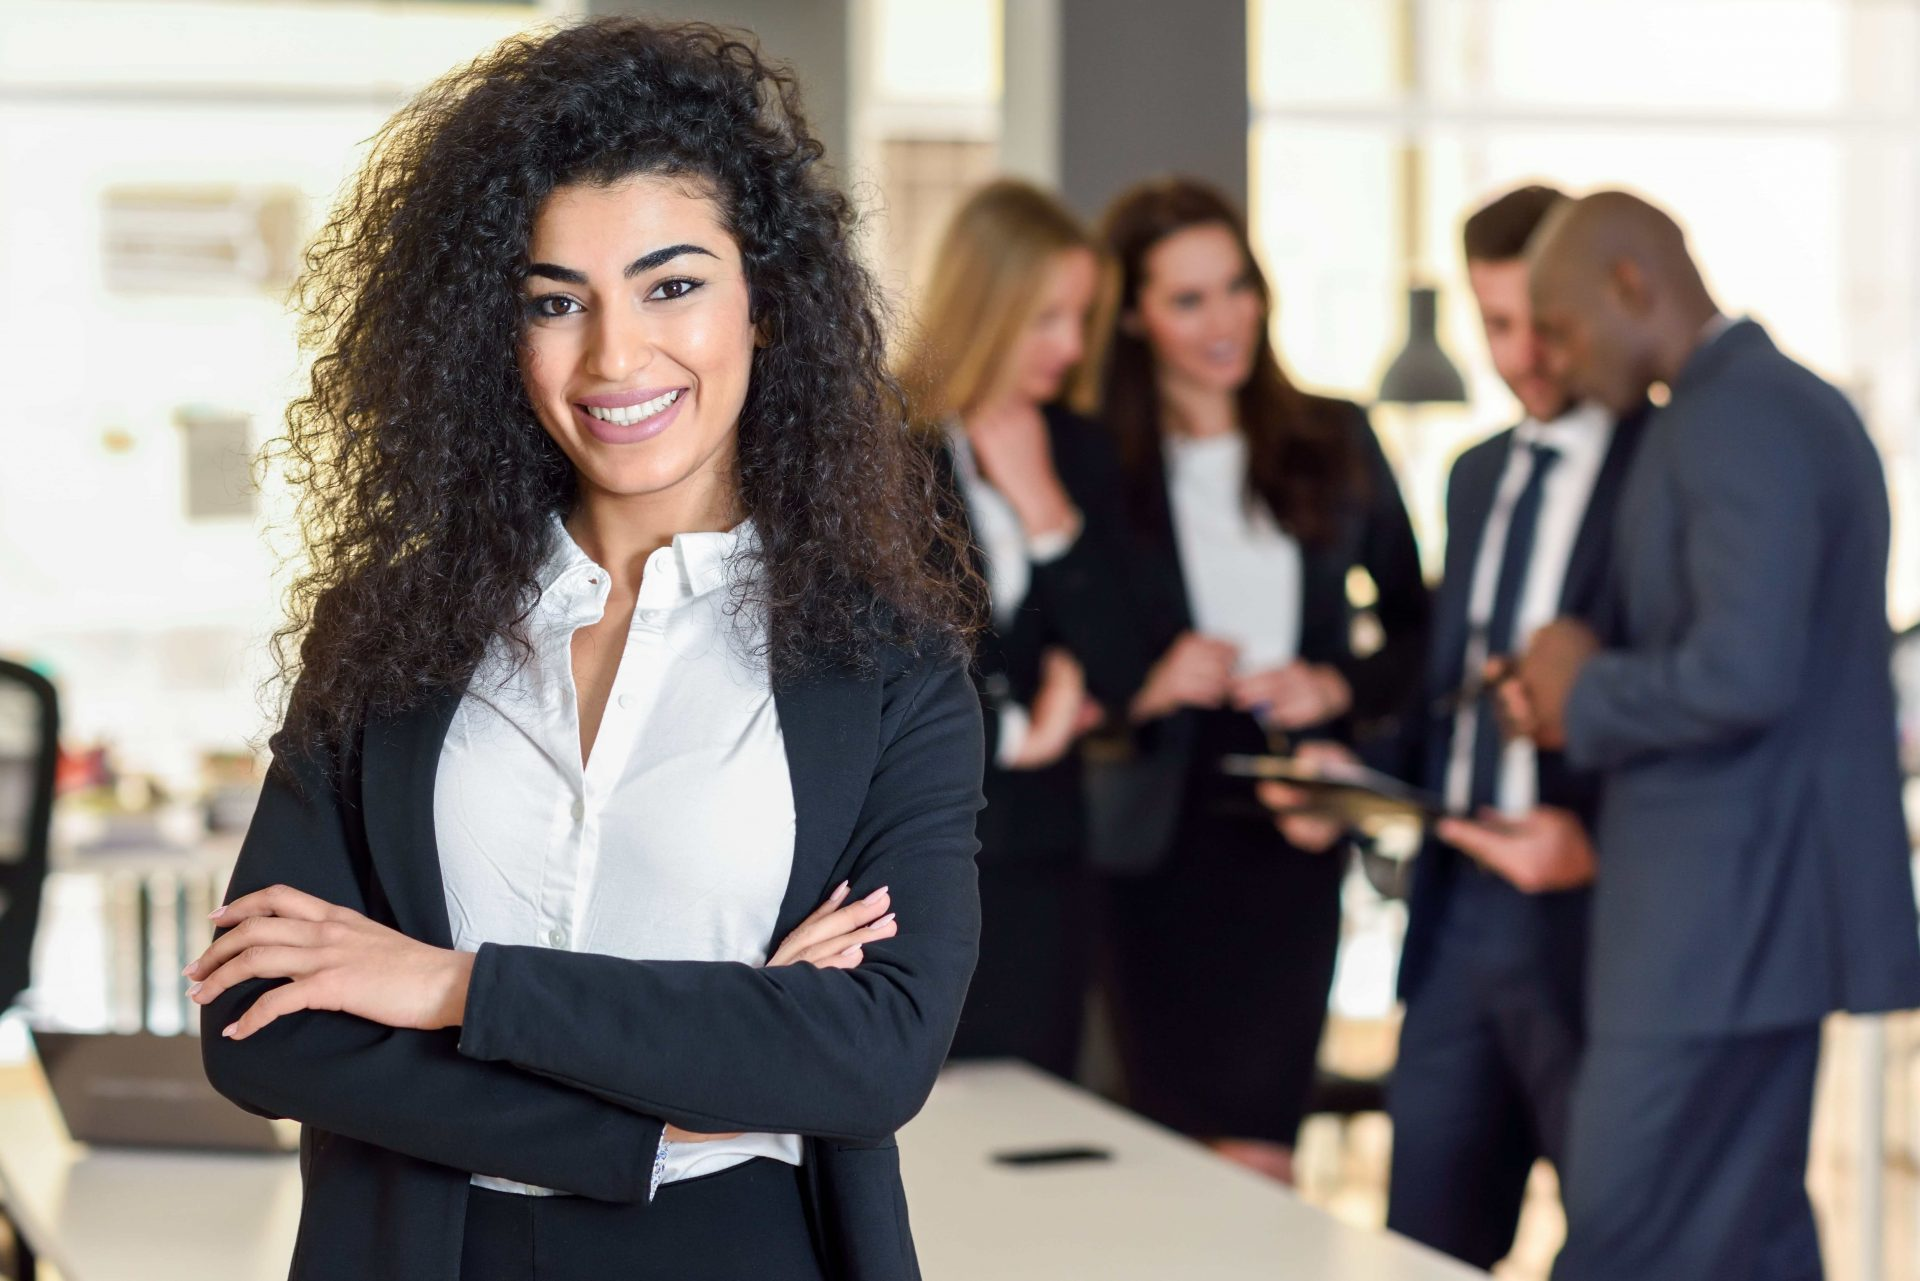 Female Leaders Changing The Face Of The Workplace